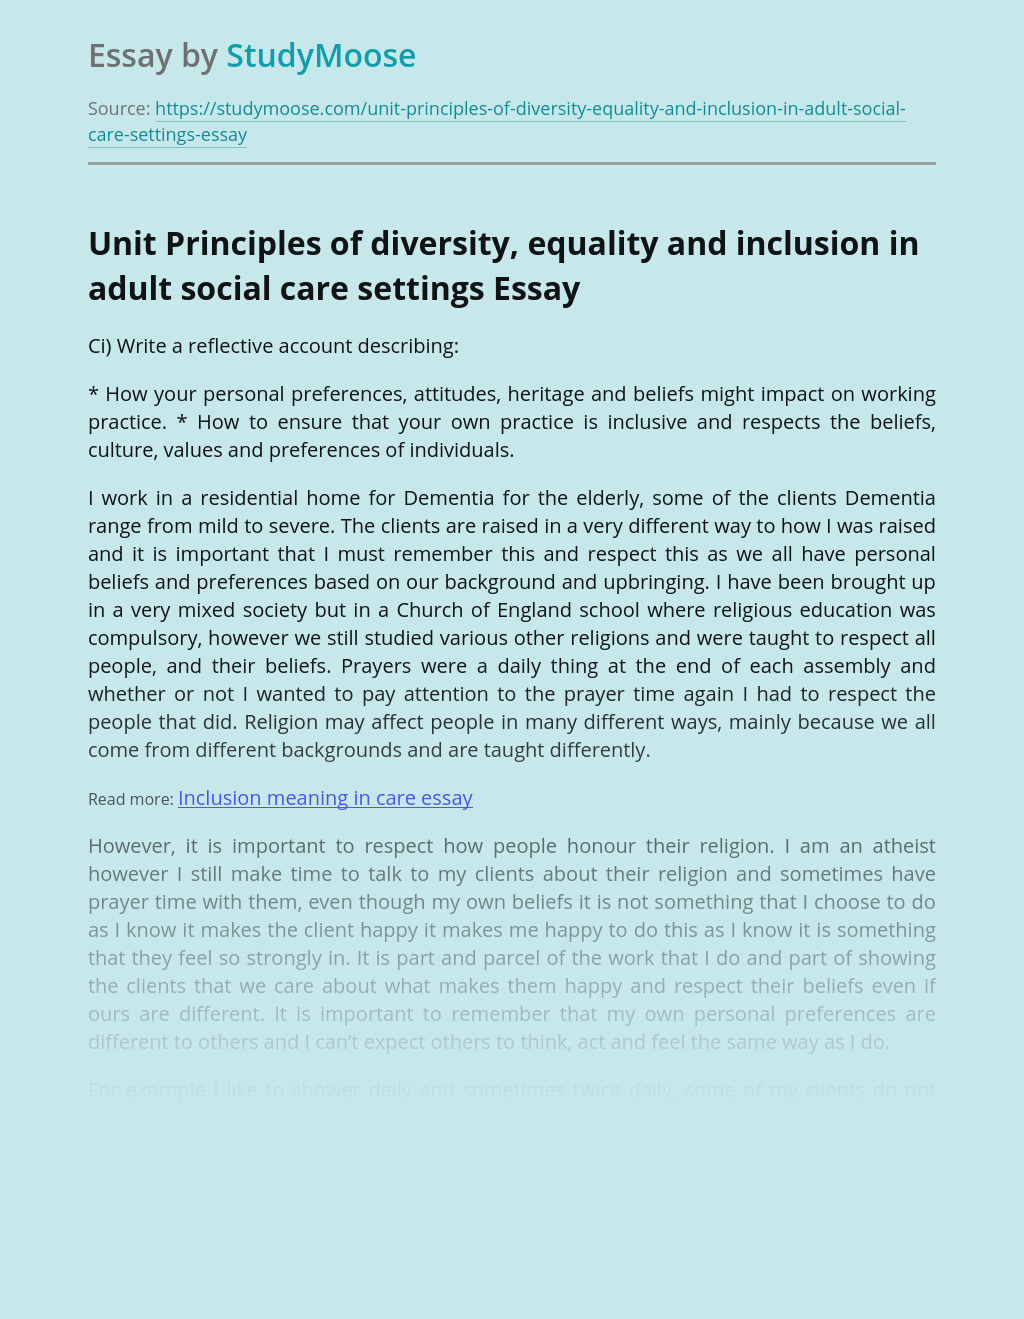 Unit Principles of diversity, equality and inclusion in adult social care settings